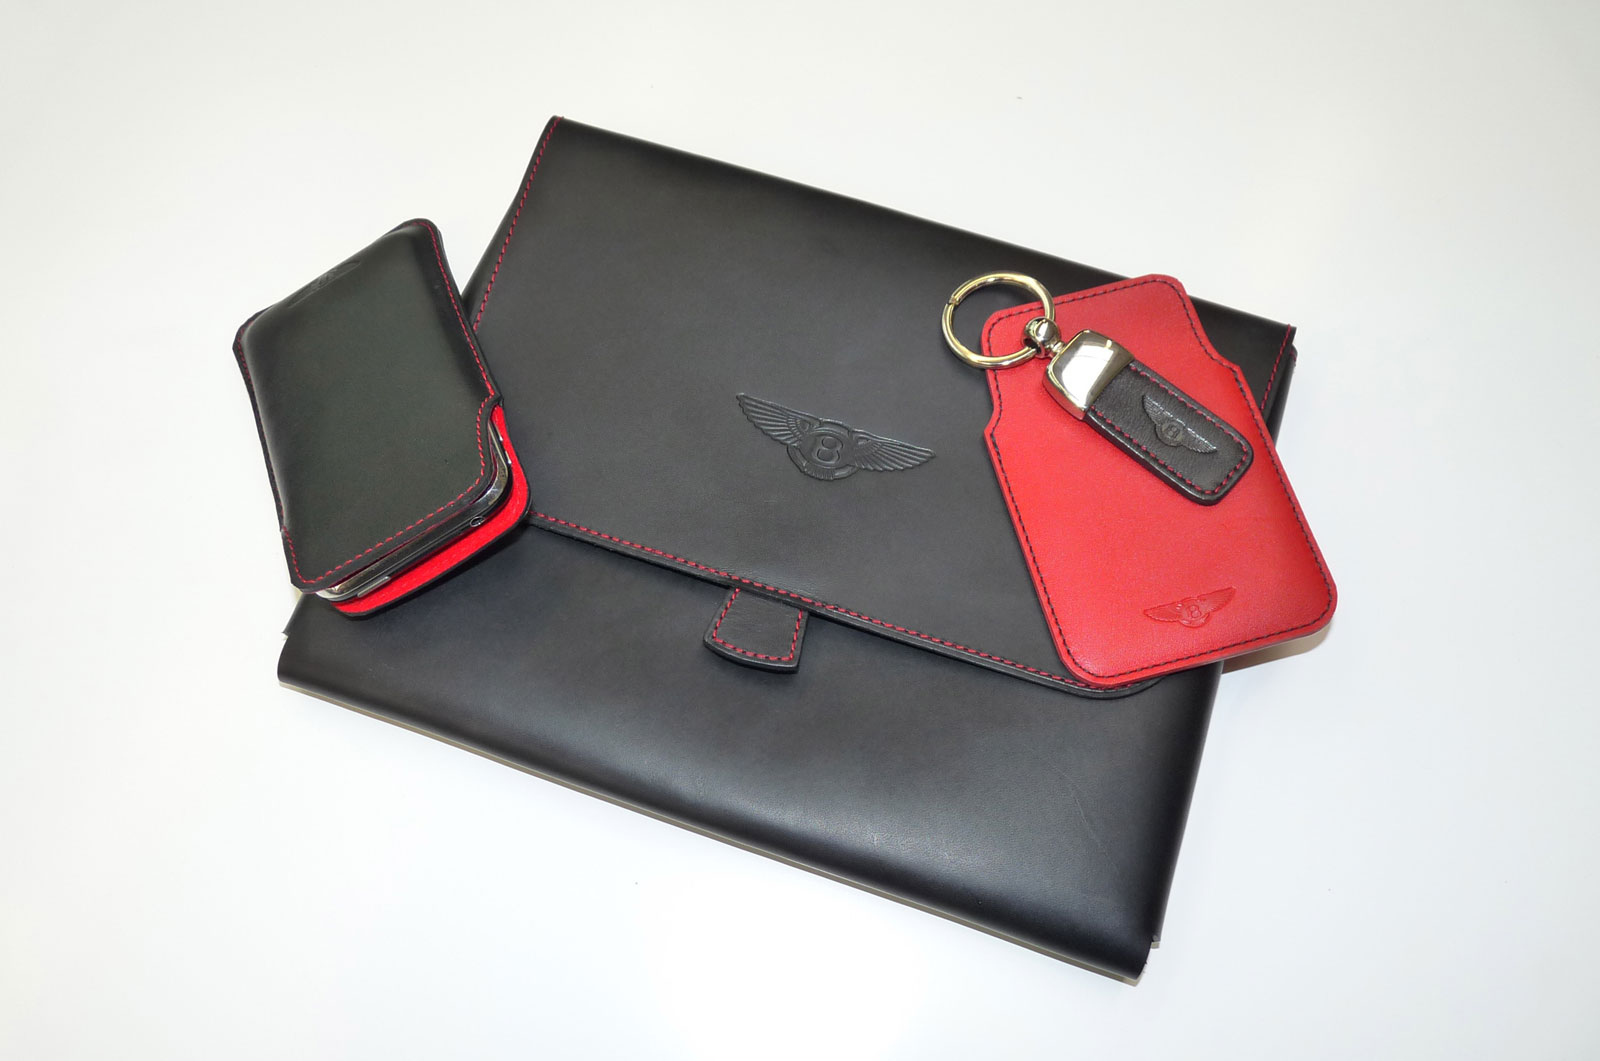 Ettinger for Bentley - iPad Case, iPhone Case, BlackBerry Case and Capped Key Ring